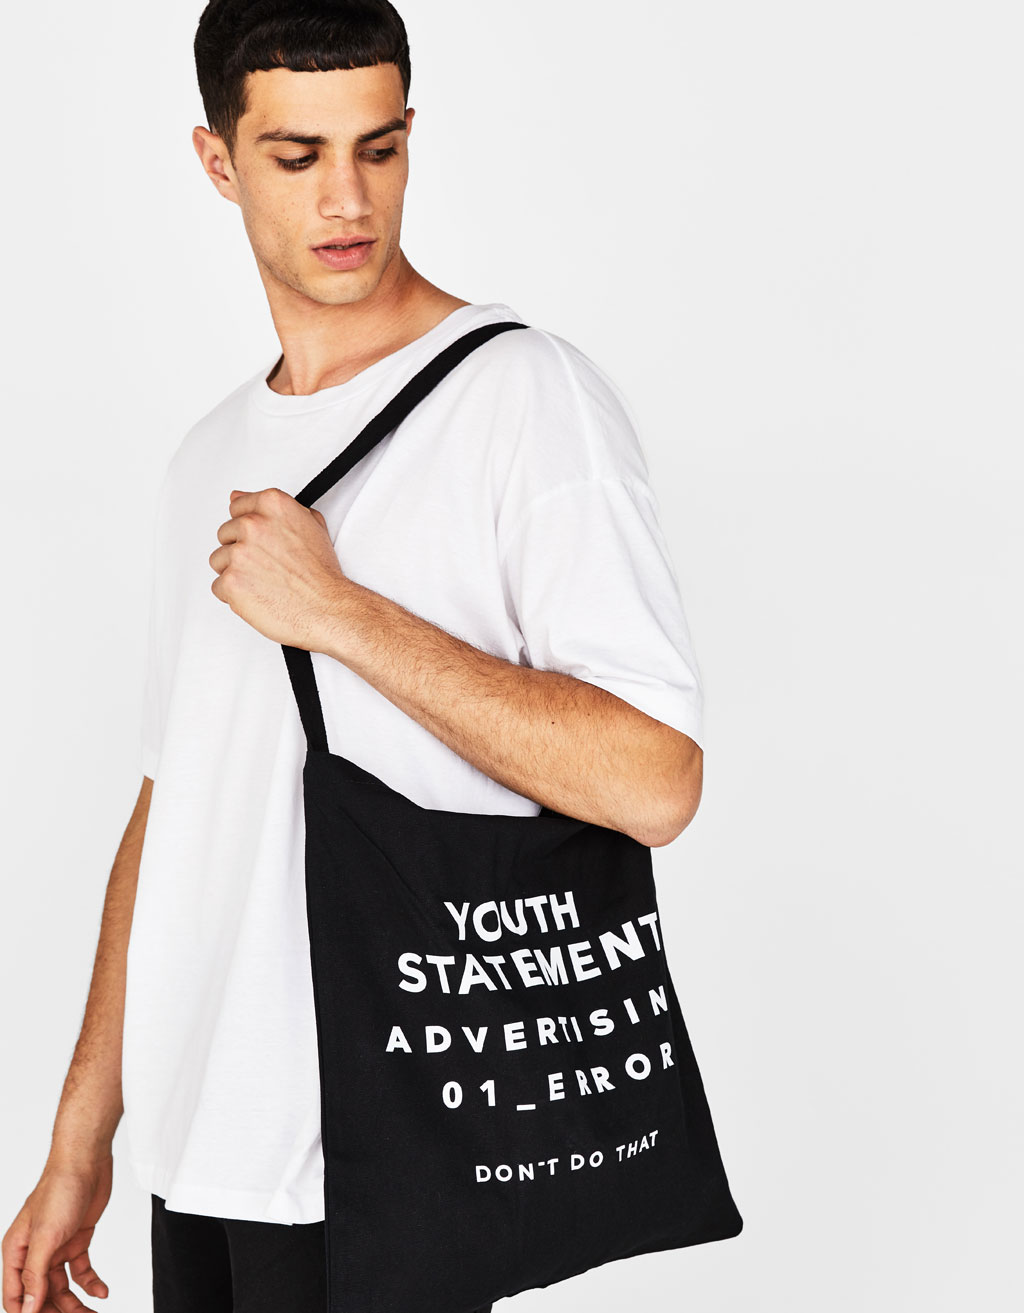 Tote bag with slogan